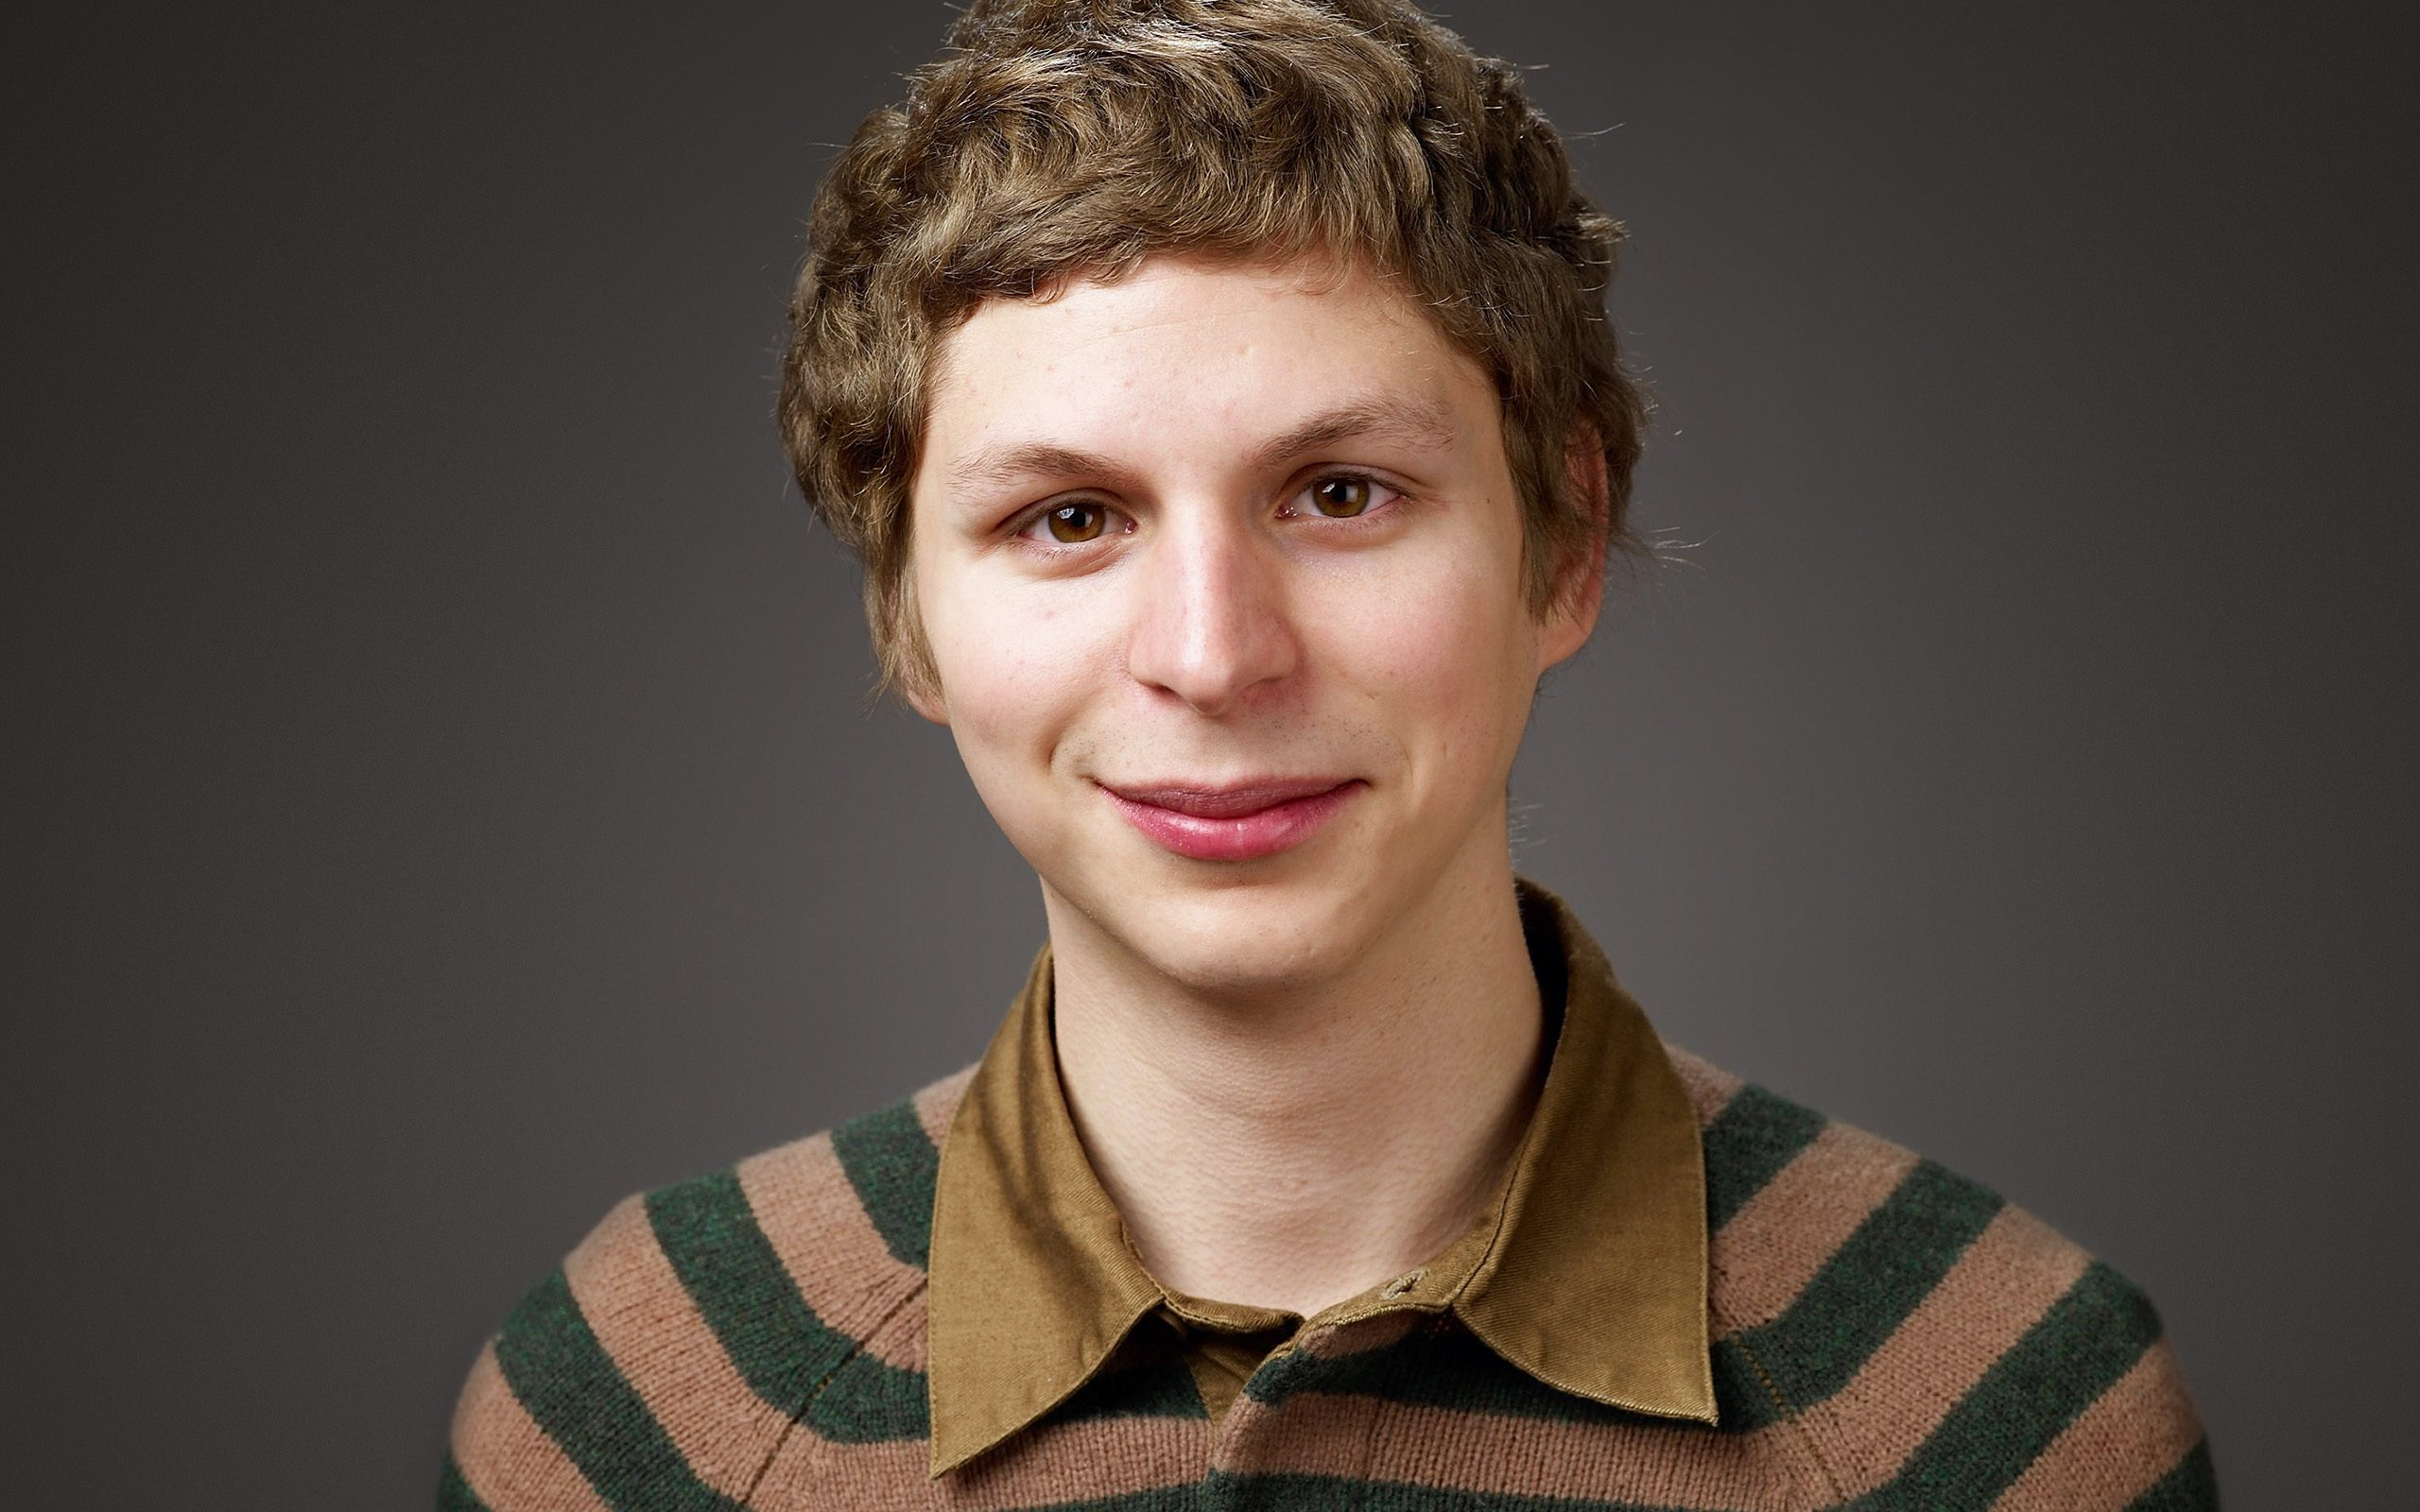 """Michael Cera Releases New Video for  """"Best I Can"""" Featuring Sharon Van Etten"""